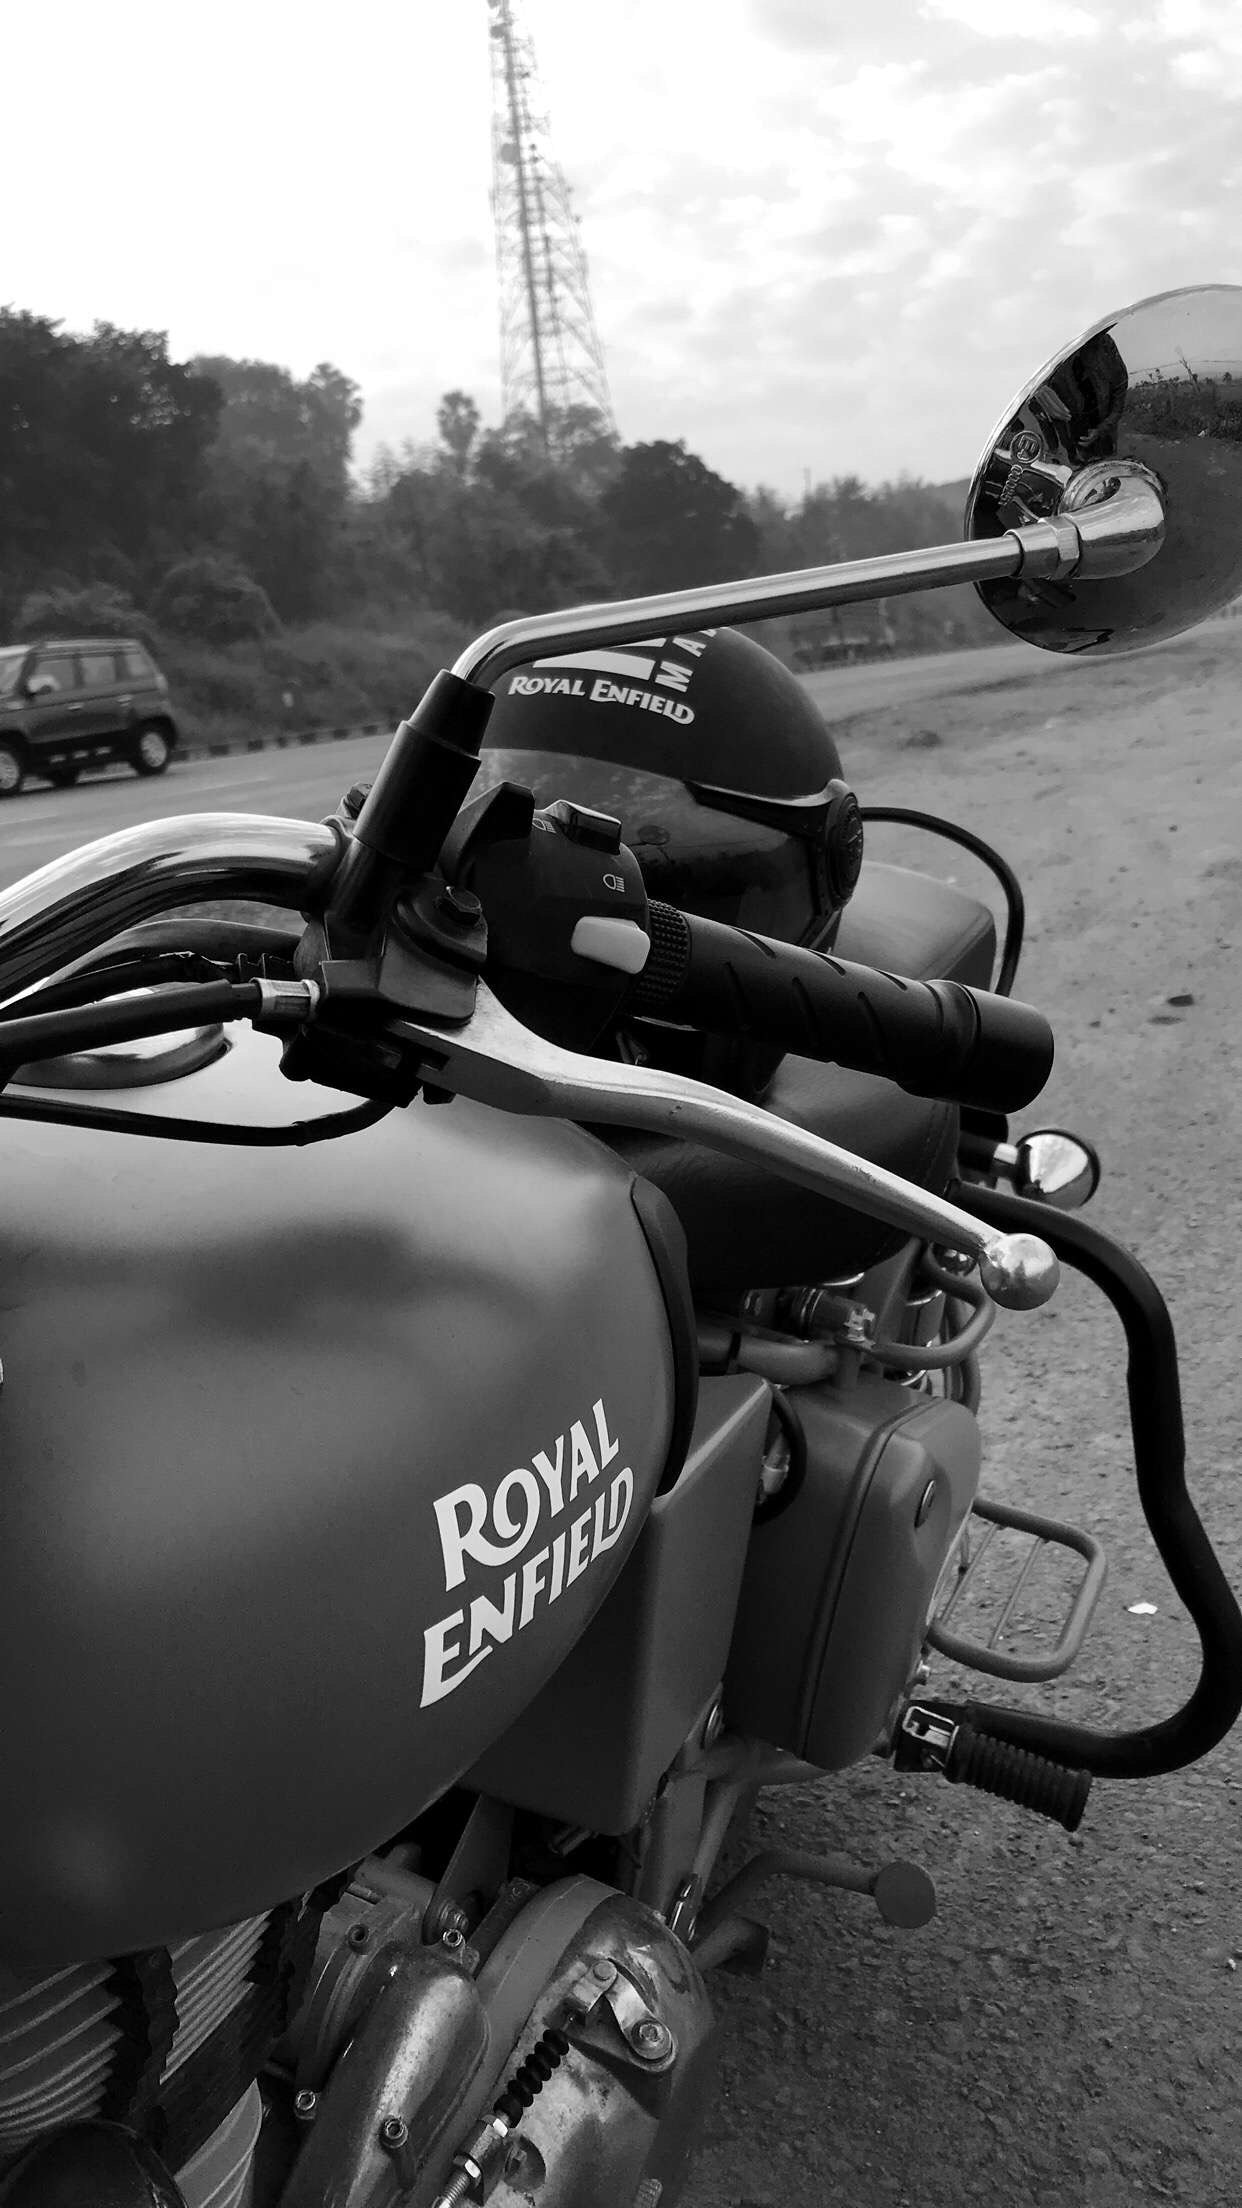 Royal Enfield Indian Motorcycle Grayscale Photo Free Stock Photo